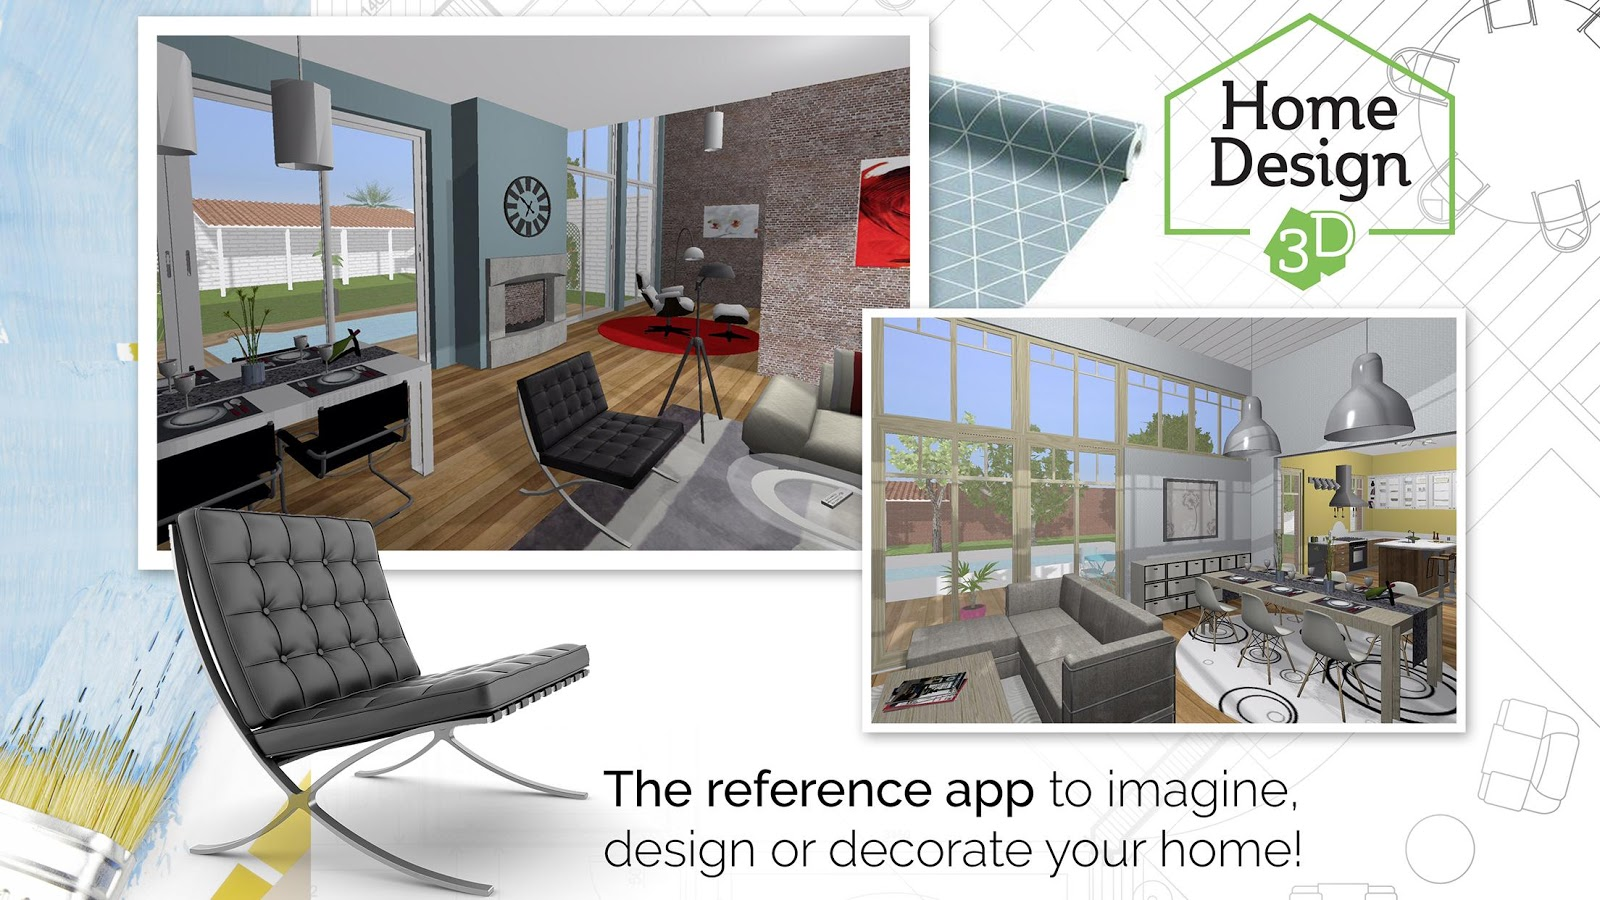 Home design 3d freemium android apps on google play for 3d house design